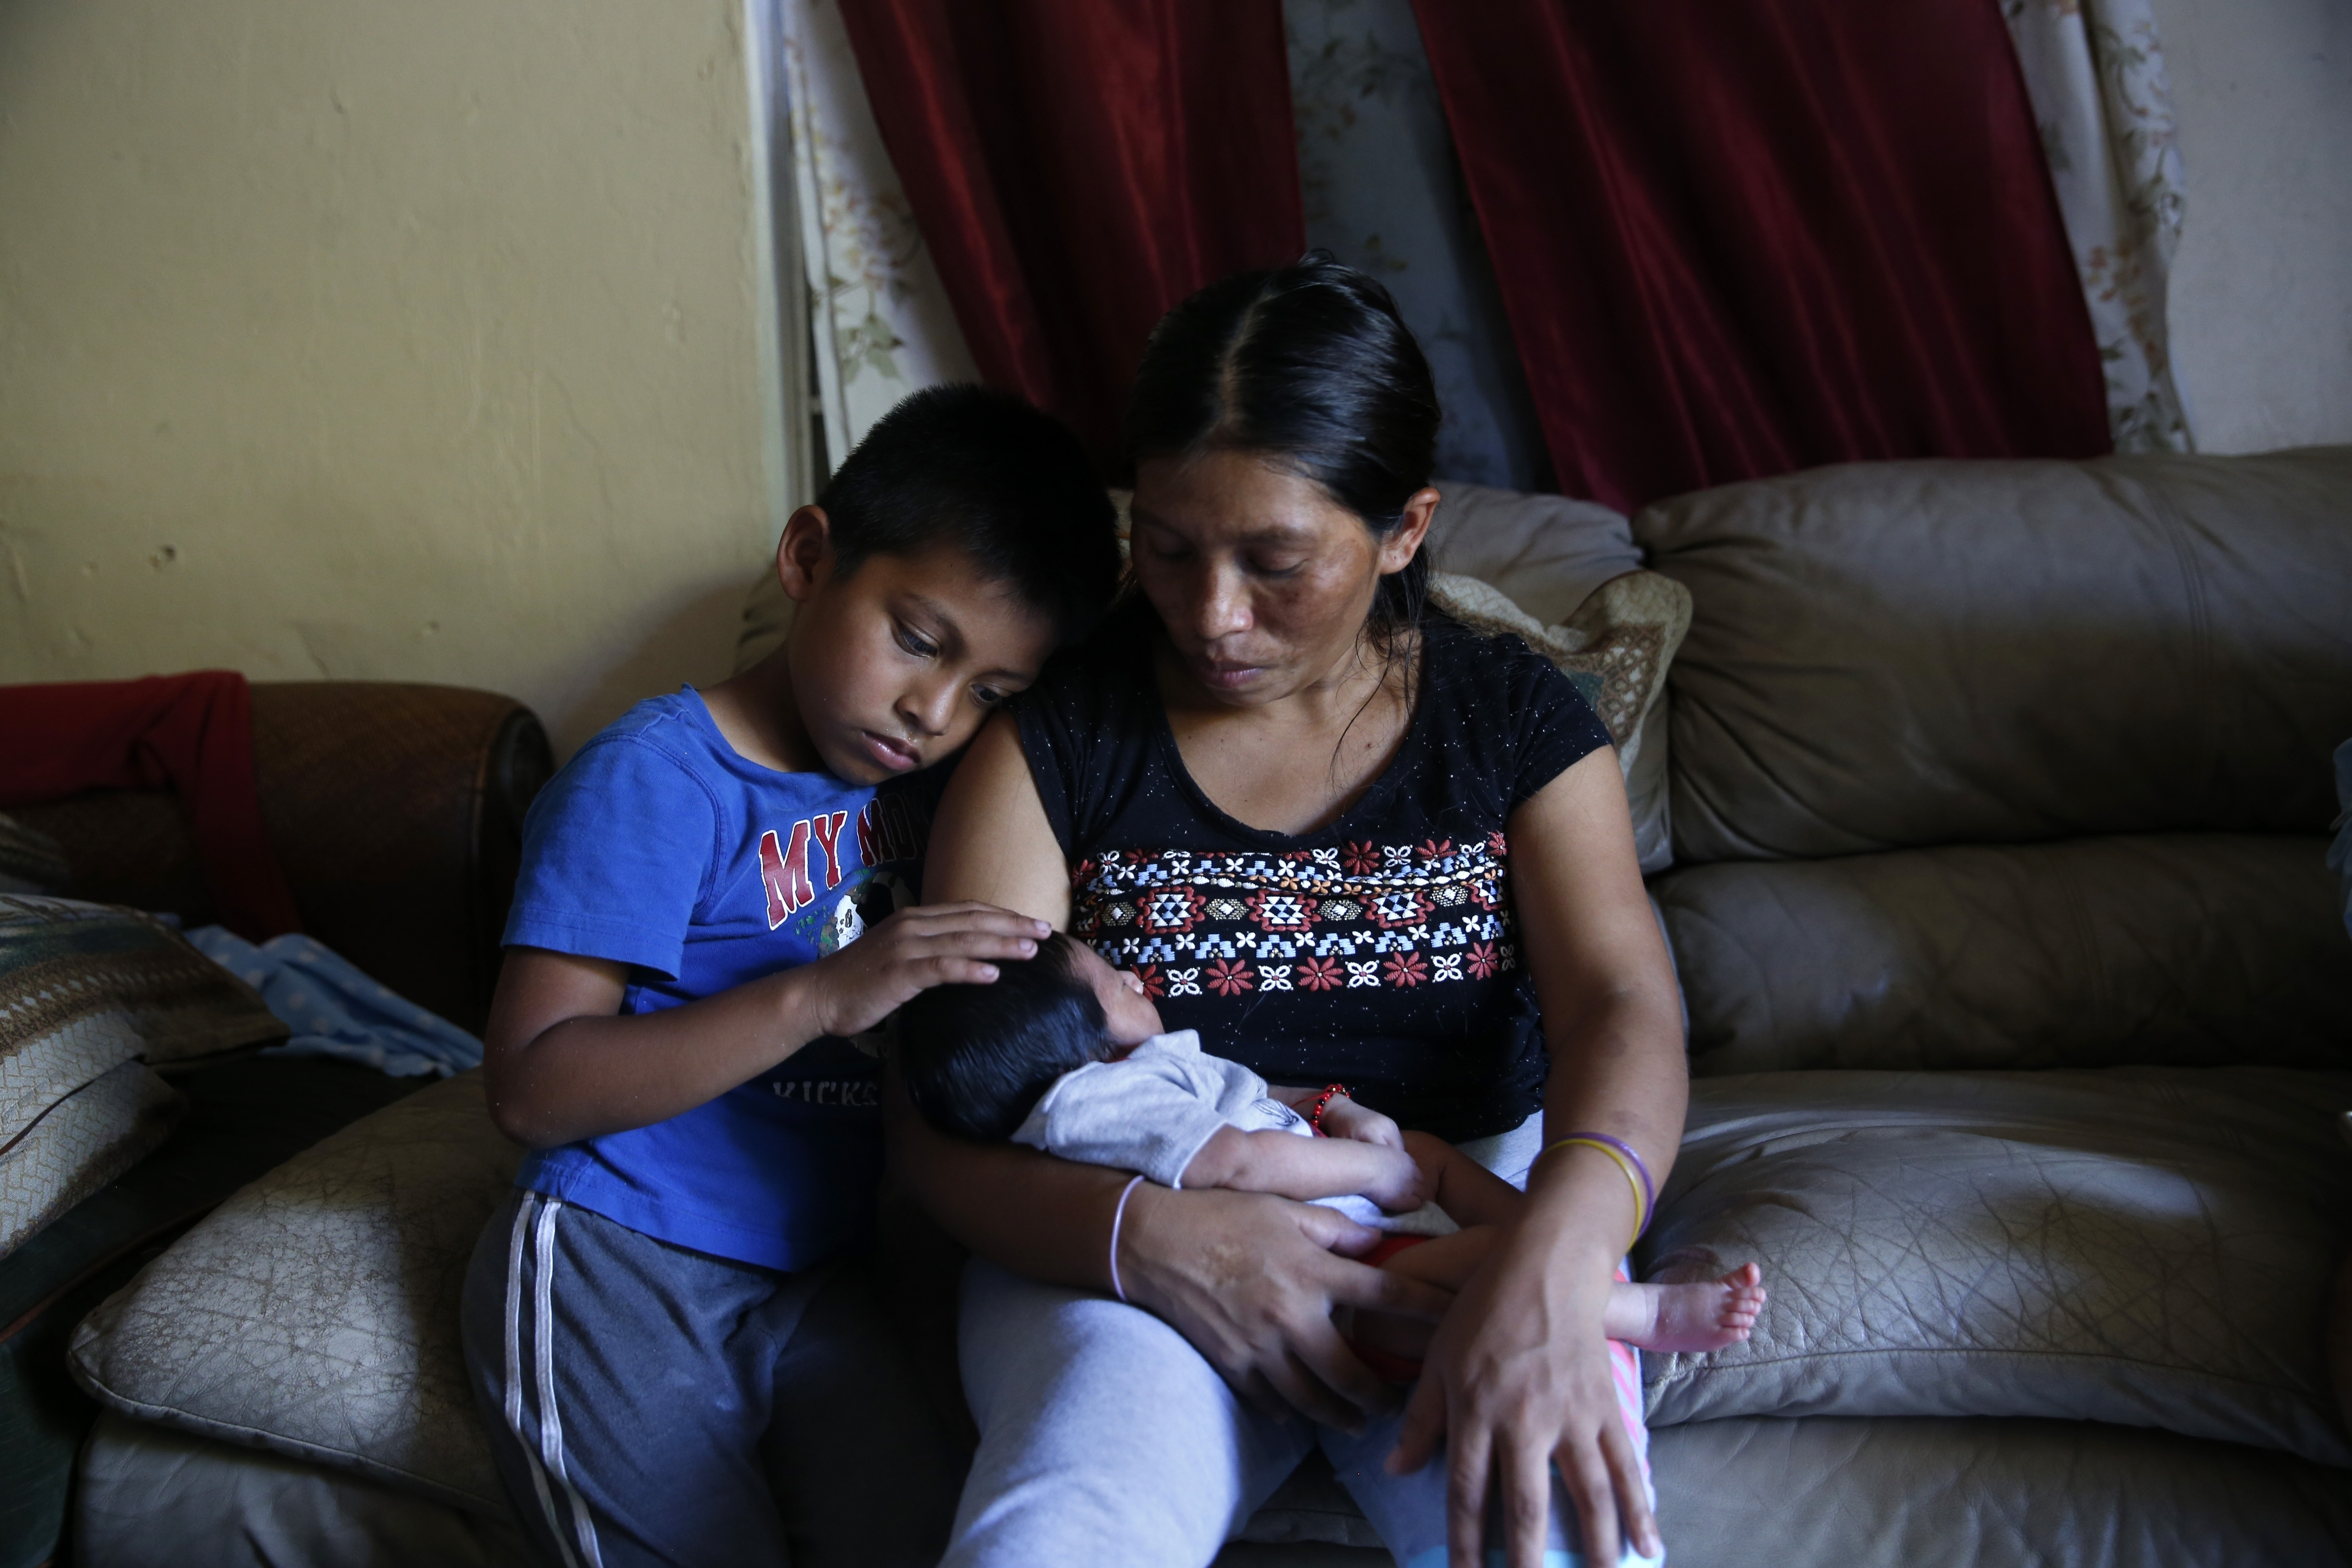 Irma The Poor In this Sept. 12, 2017 photo, Aura Gaspar sits with her two-week old baby Ashley, and her son, Isaac, 5, in their home, dark due to a power failure from Hurricane Irma, in Immokalee, Fla. Gaspar said they spent $600 getting ready for Irma, the equivalent of two weeks pay. (AP Photo/Gerald Herbert)